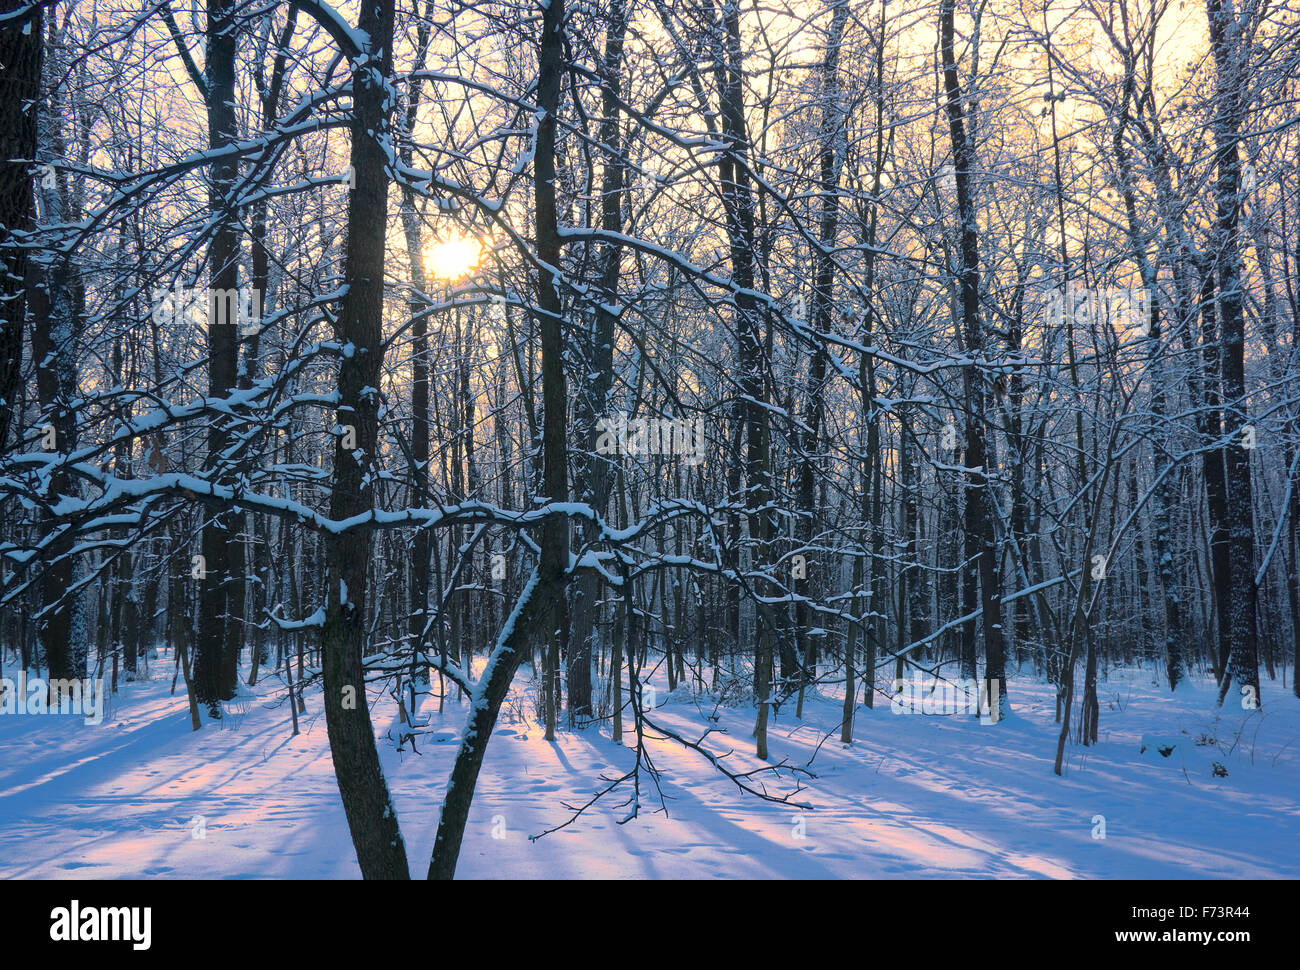 Trees under snow. Sunny day. Horizontal format, - Stock Image